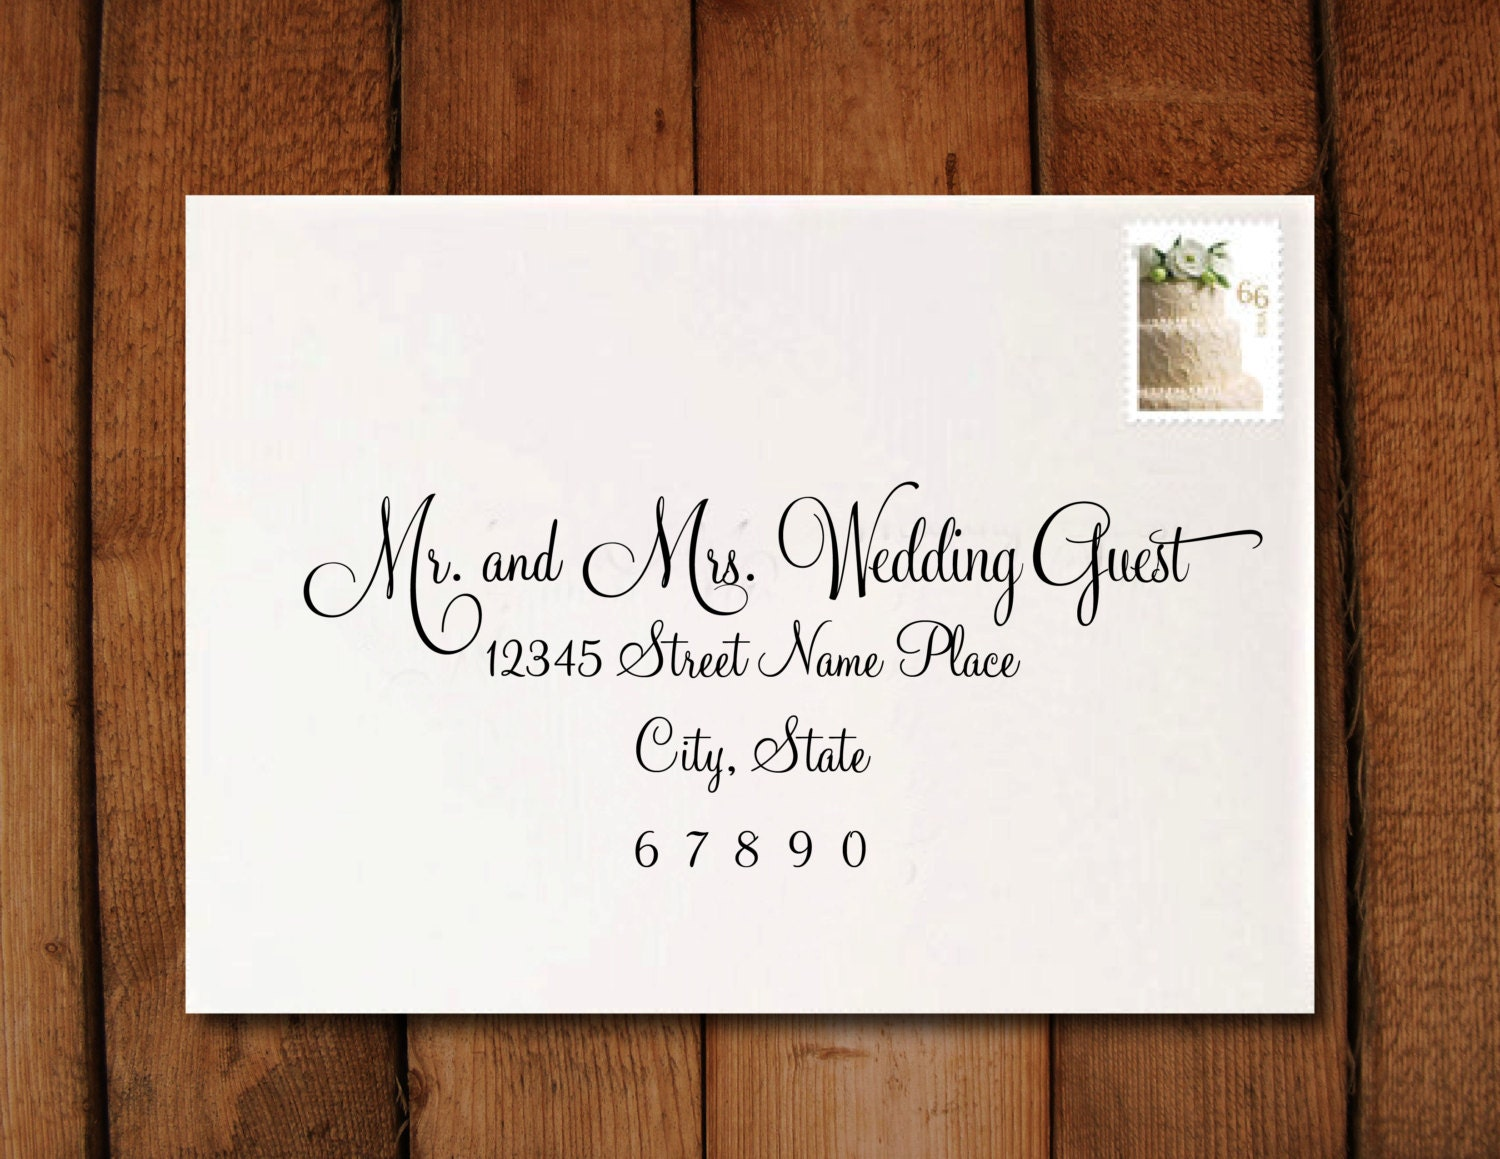 Wedding Invitation Calligraphy Digital Address Formatting